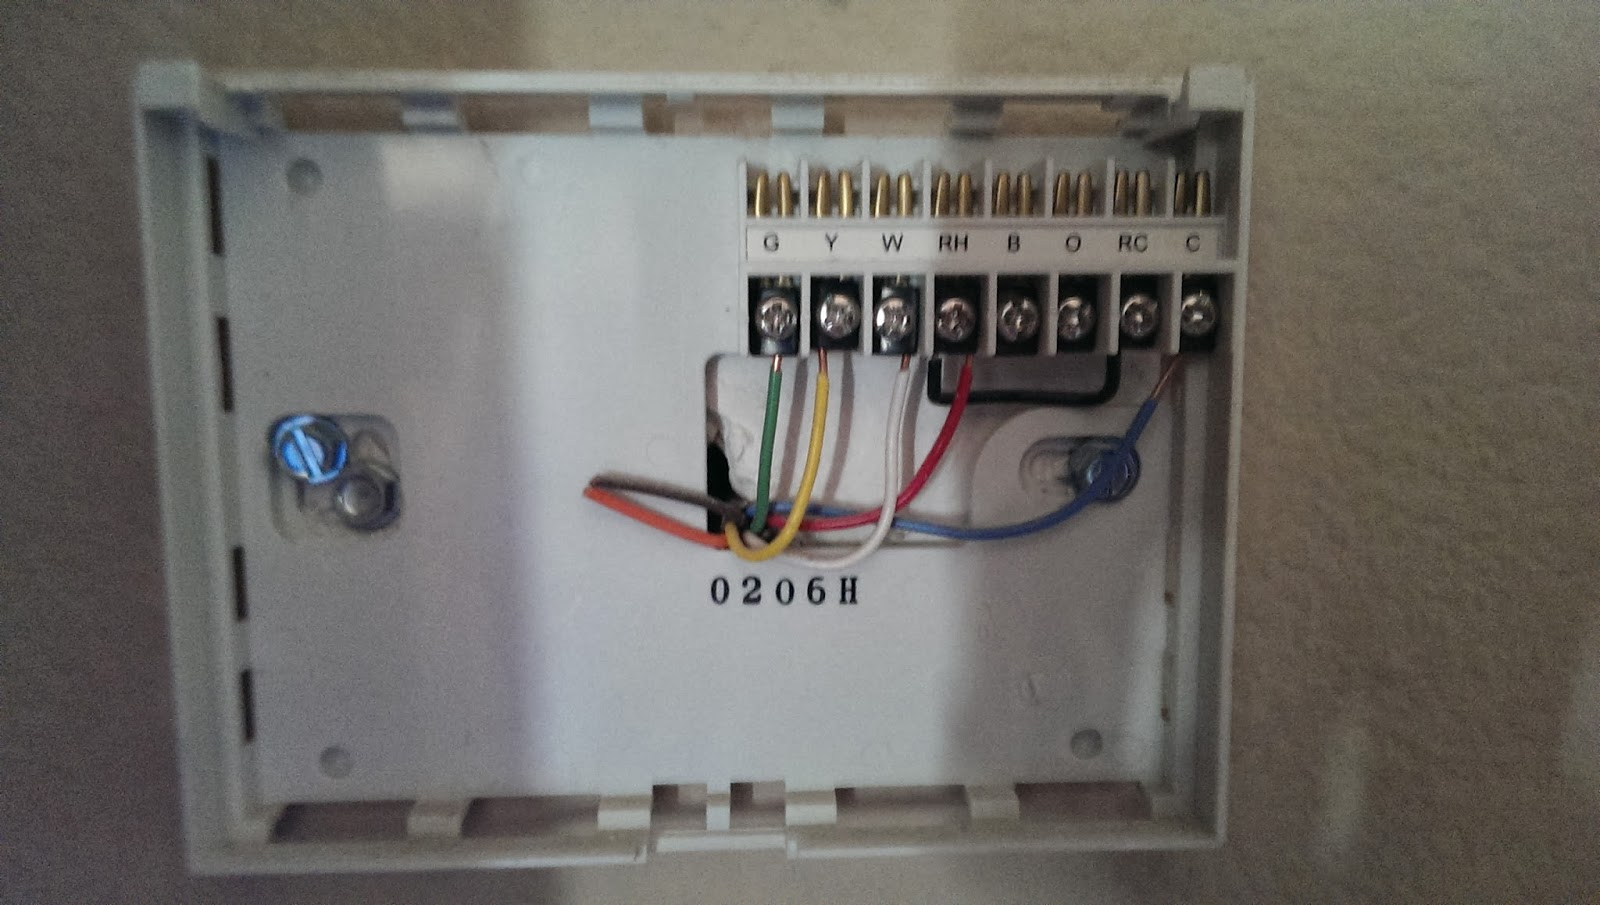 baseboard heater thermostat wiring diagram wirdig thermostat wiring diagram likewise fan relay wiring diagram on 5 wire